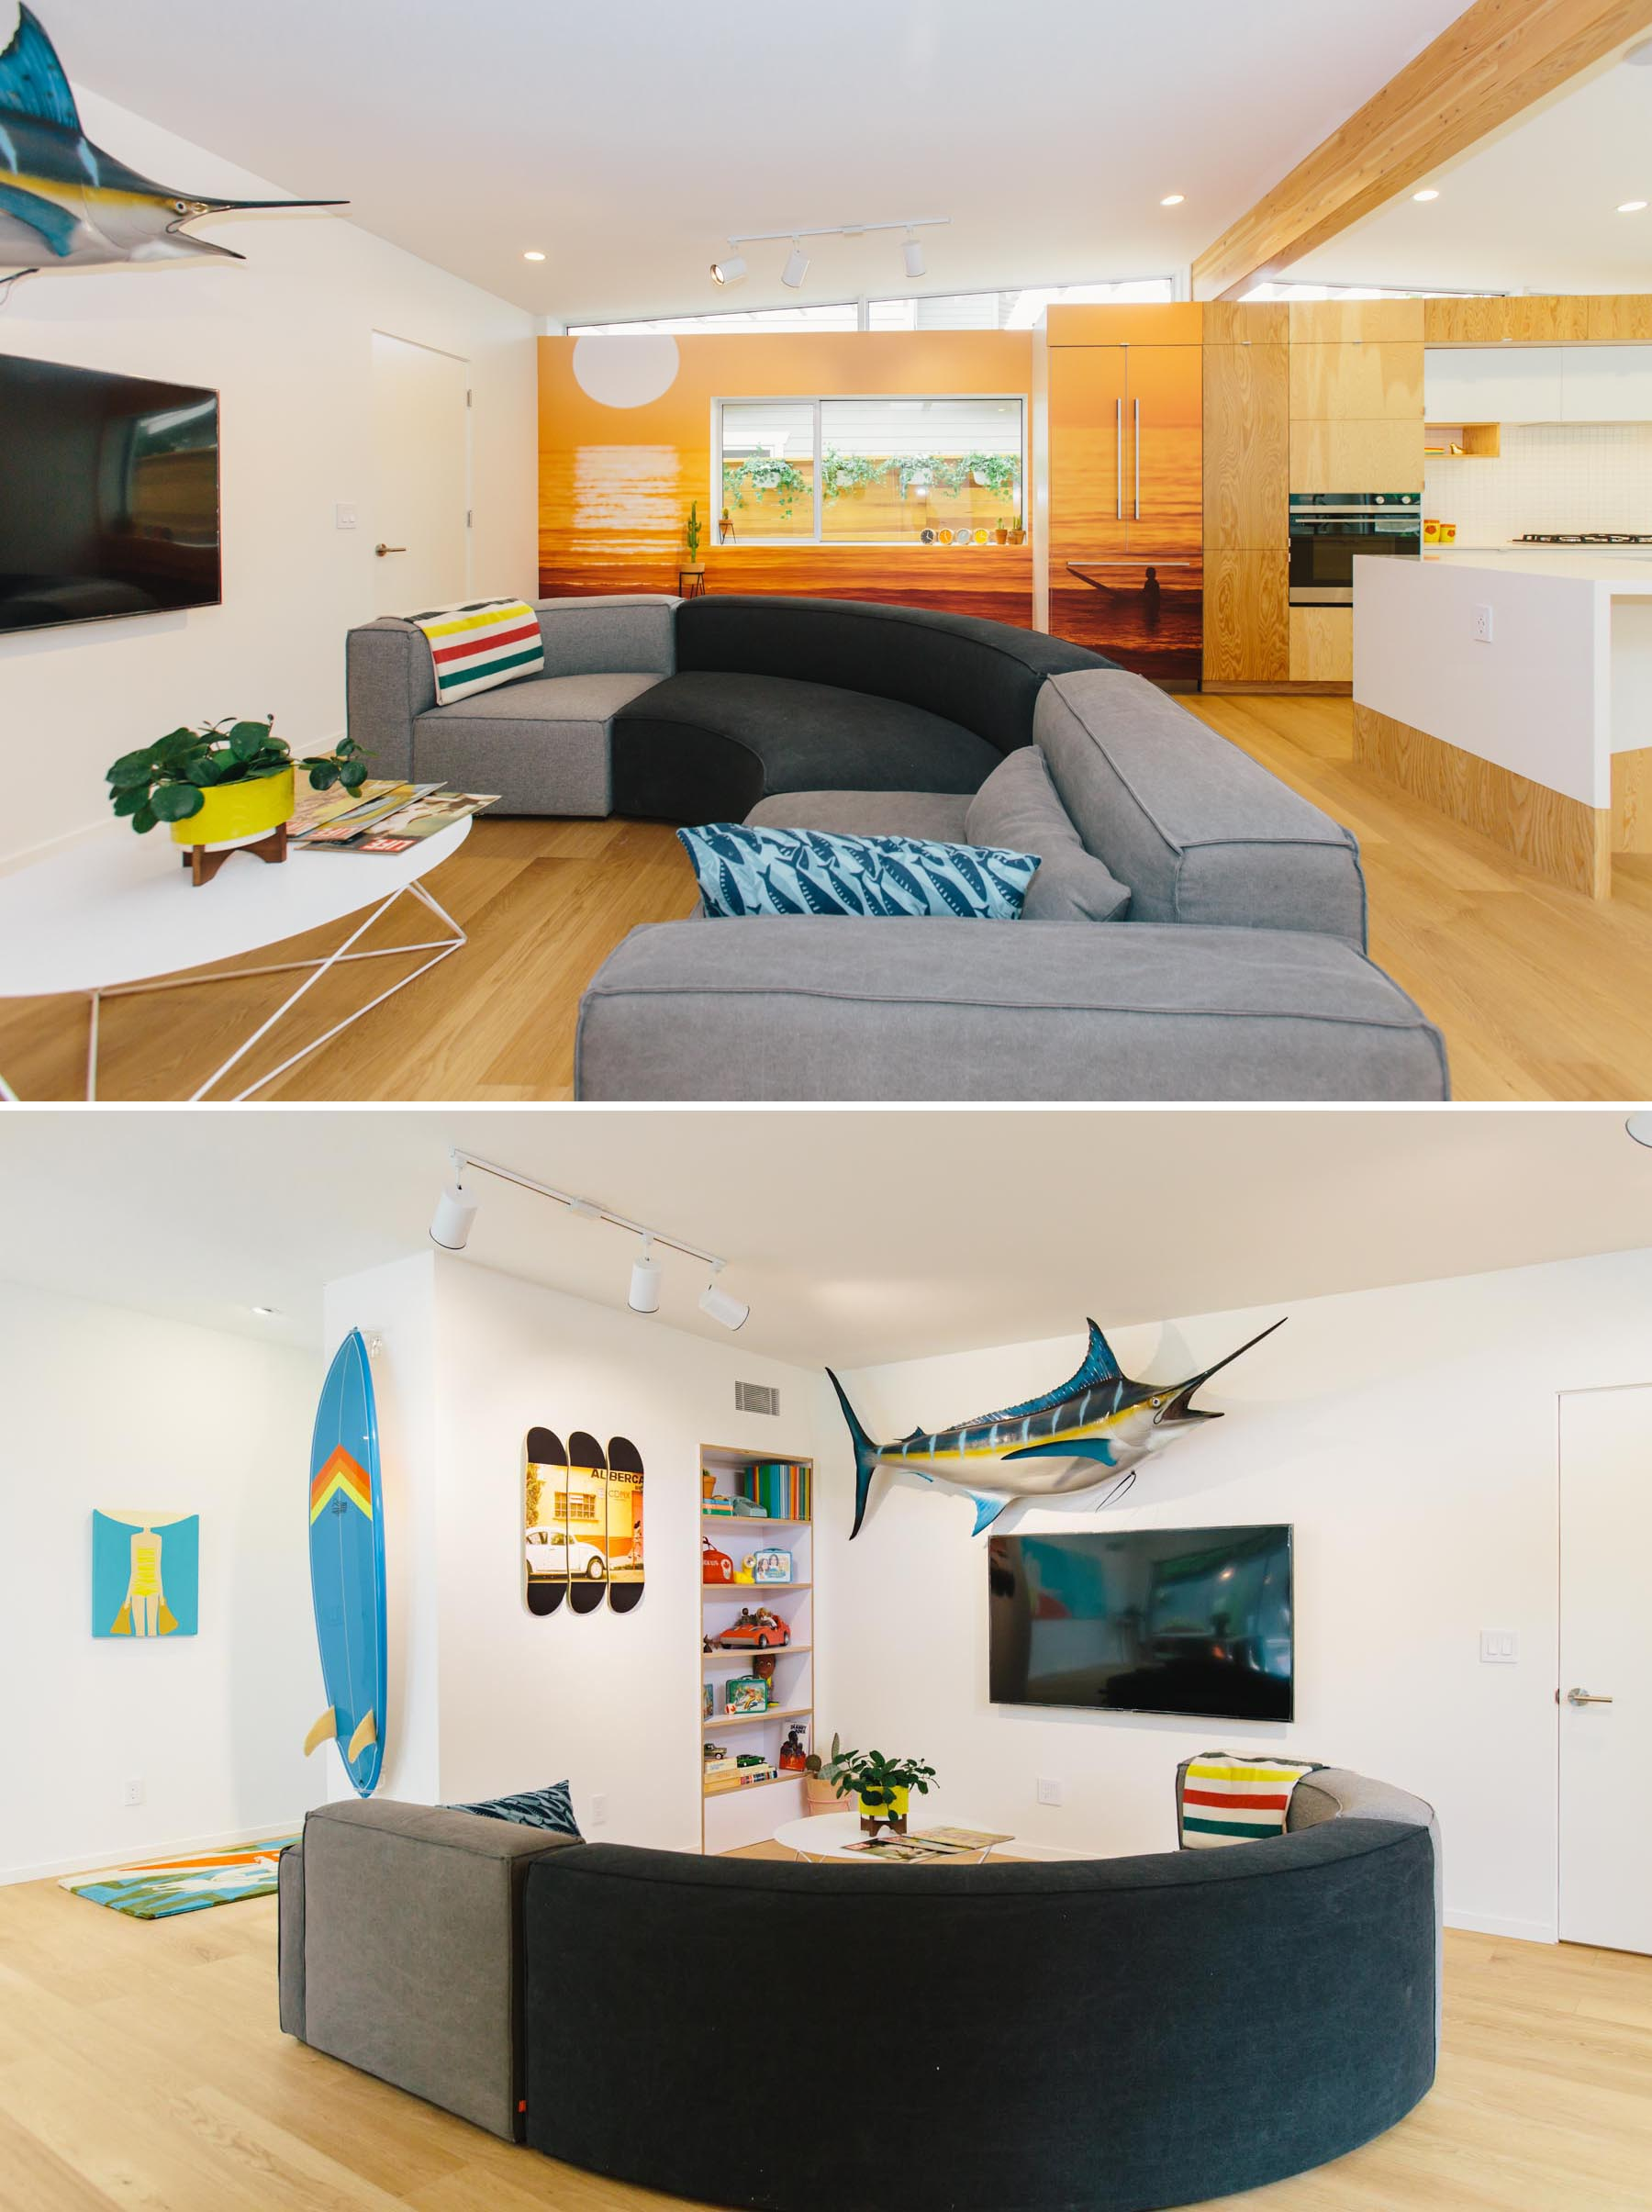 This updated living room is defined by a curved couch, built-in shelving, and a beach-inspired mural.